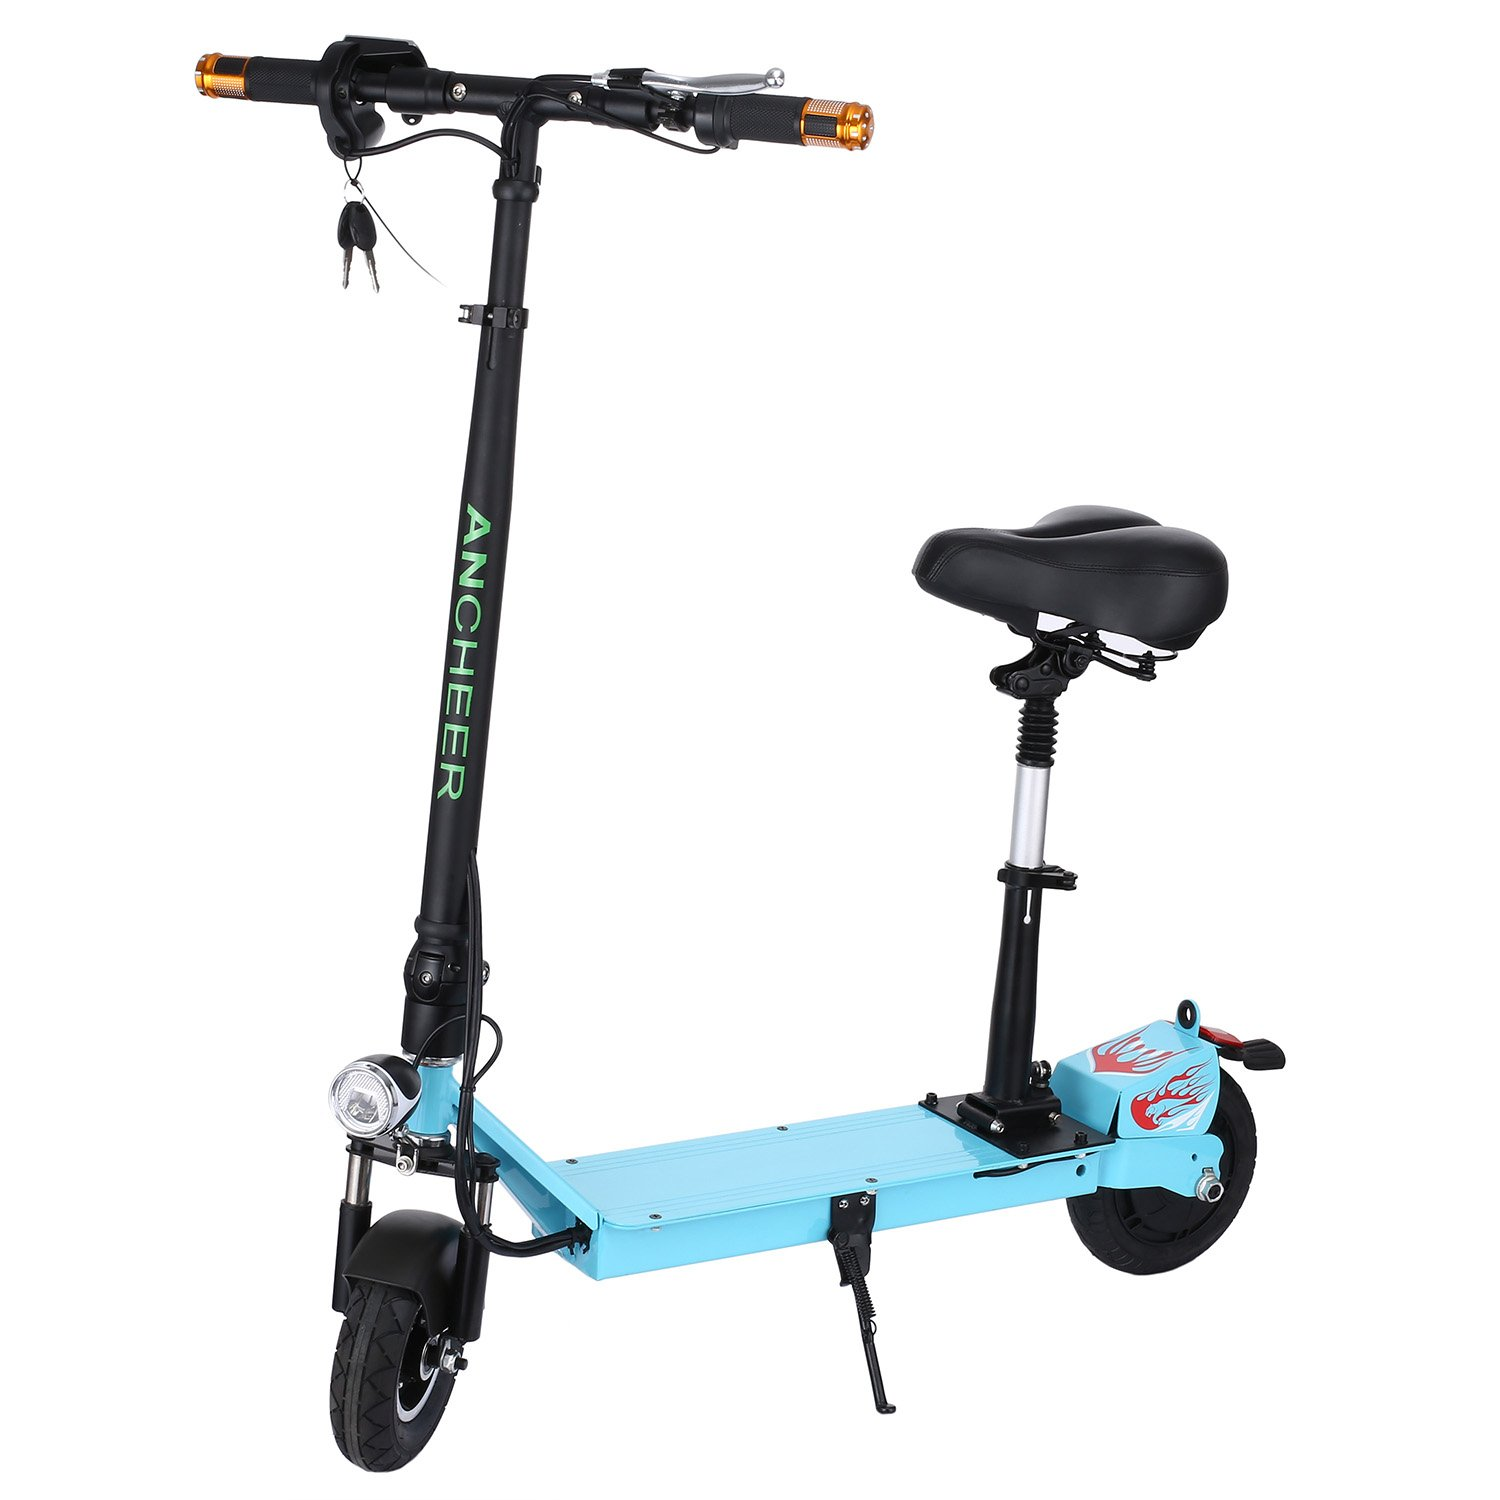 Ancheer Electric Scooter with Retractable Seat